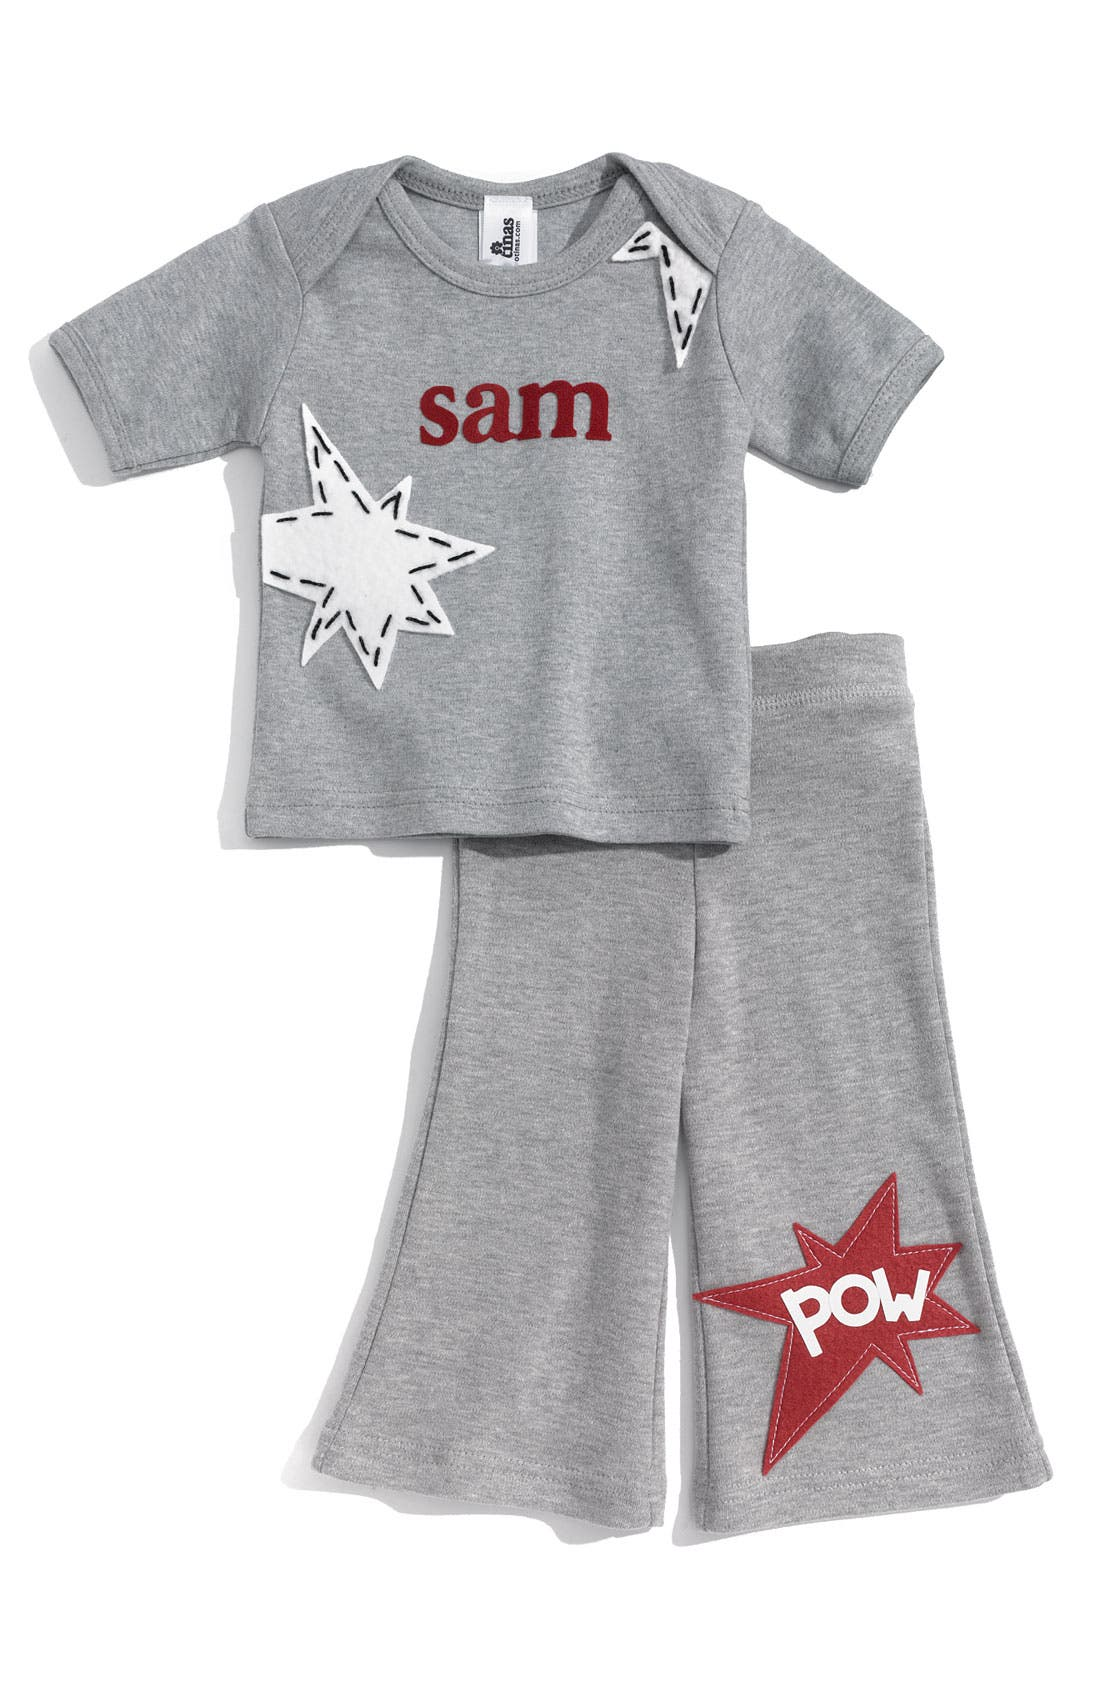 Alternate Image 1 Selected - Two Tinas Personalized T-Shirt & Pants Set (Baby)